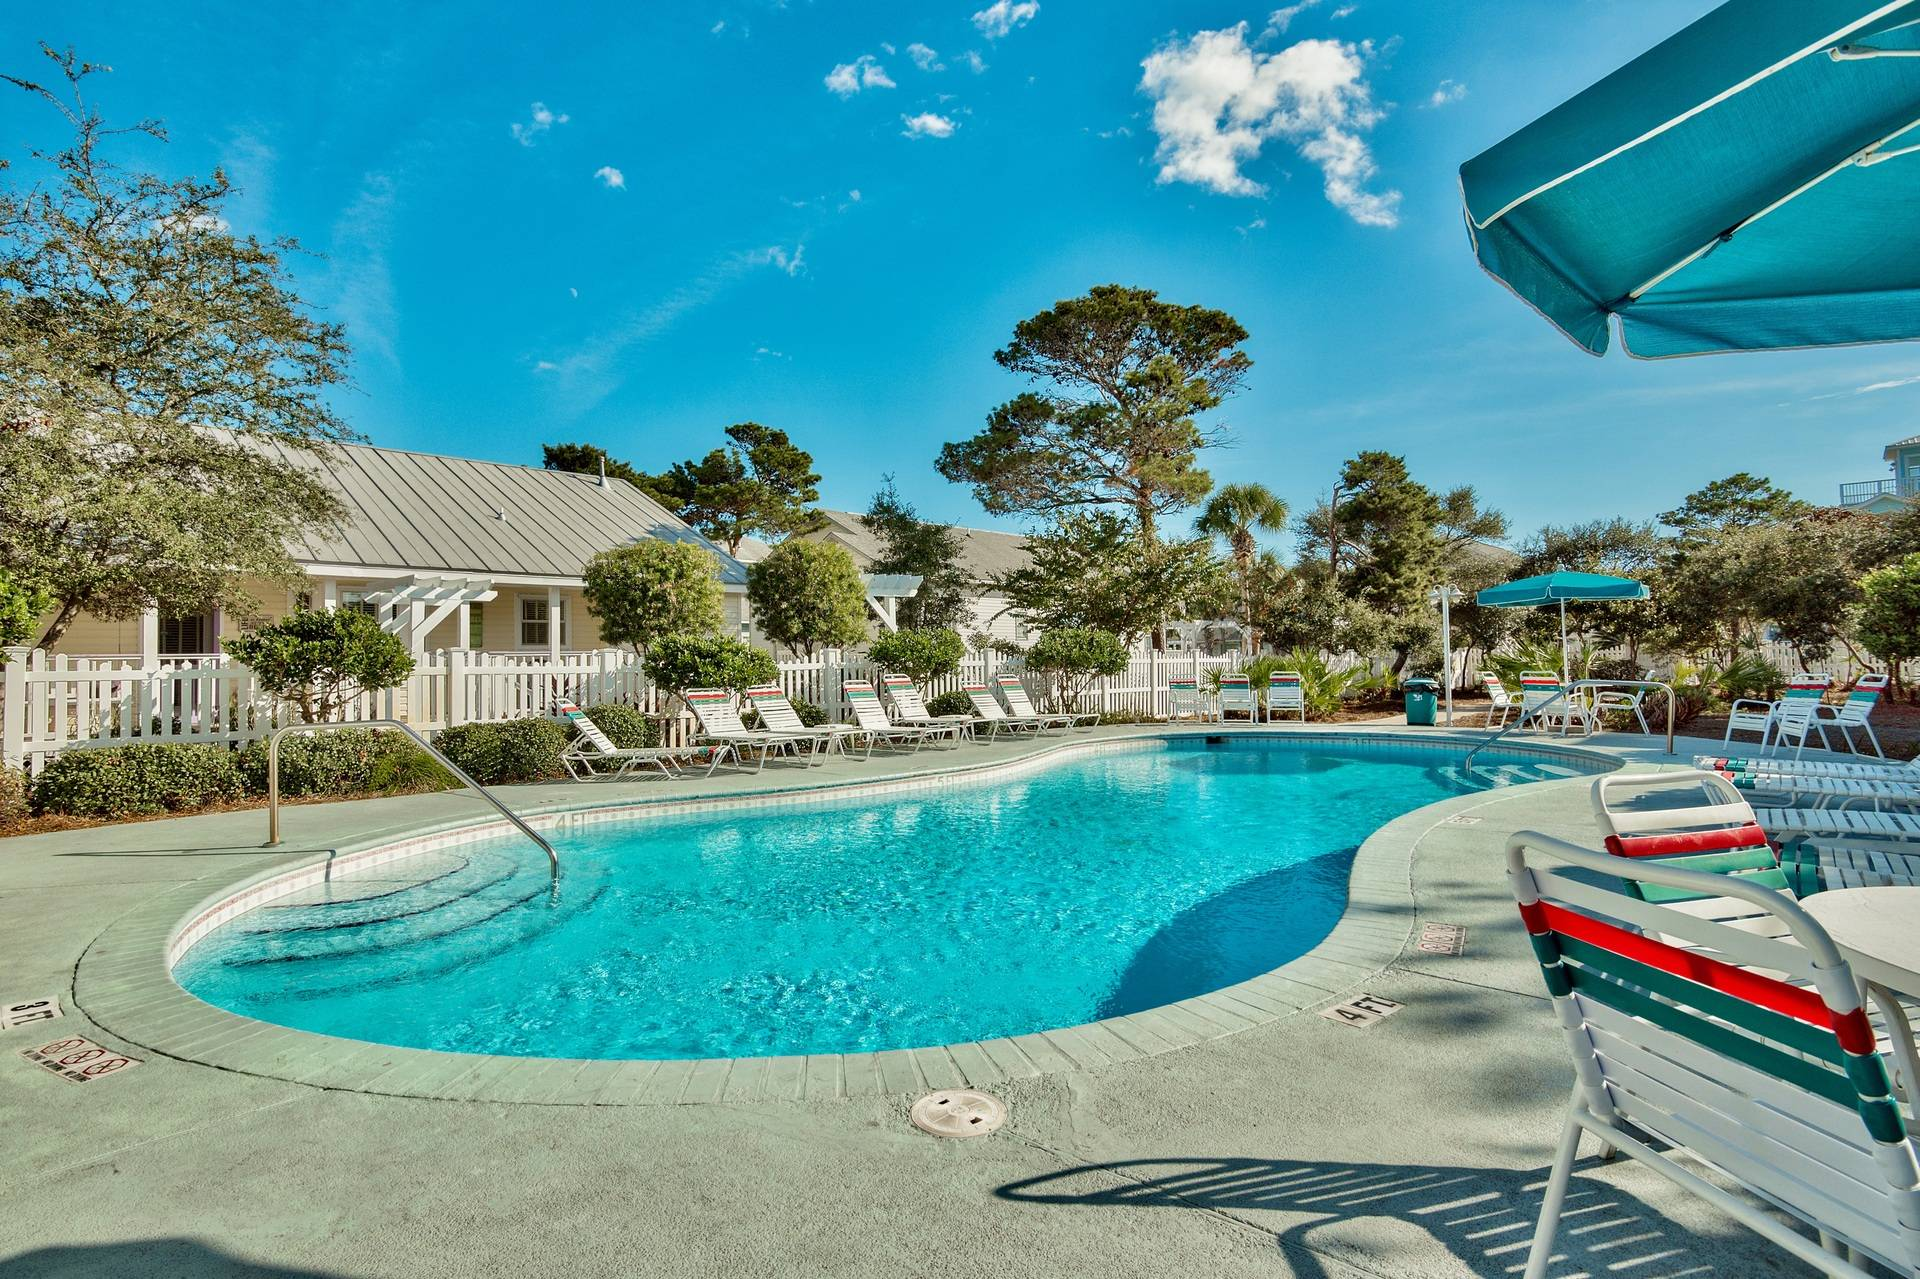 Crystal Beach Cottages Community Pool for Guests to use